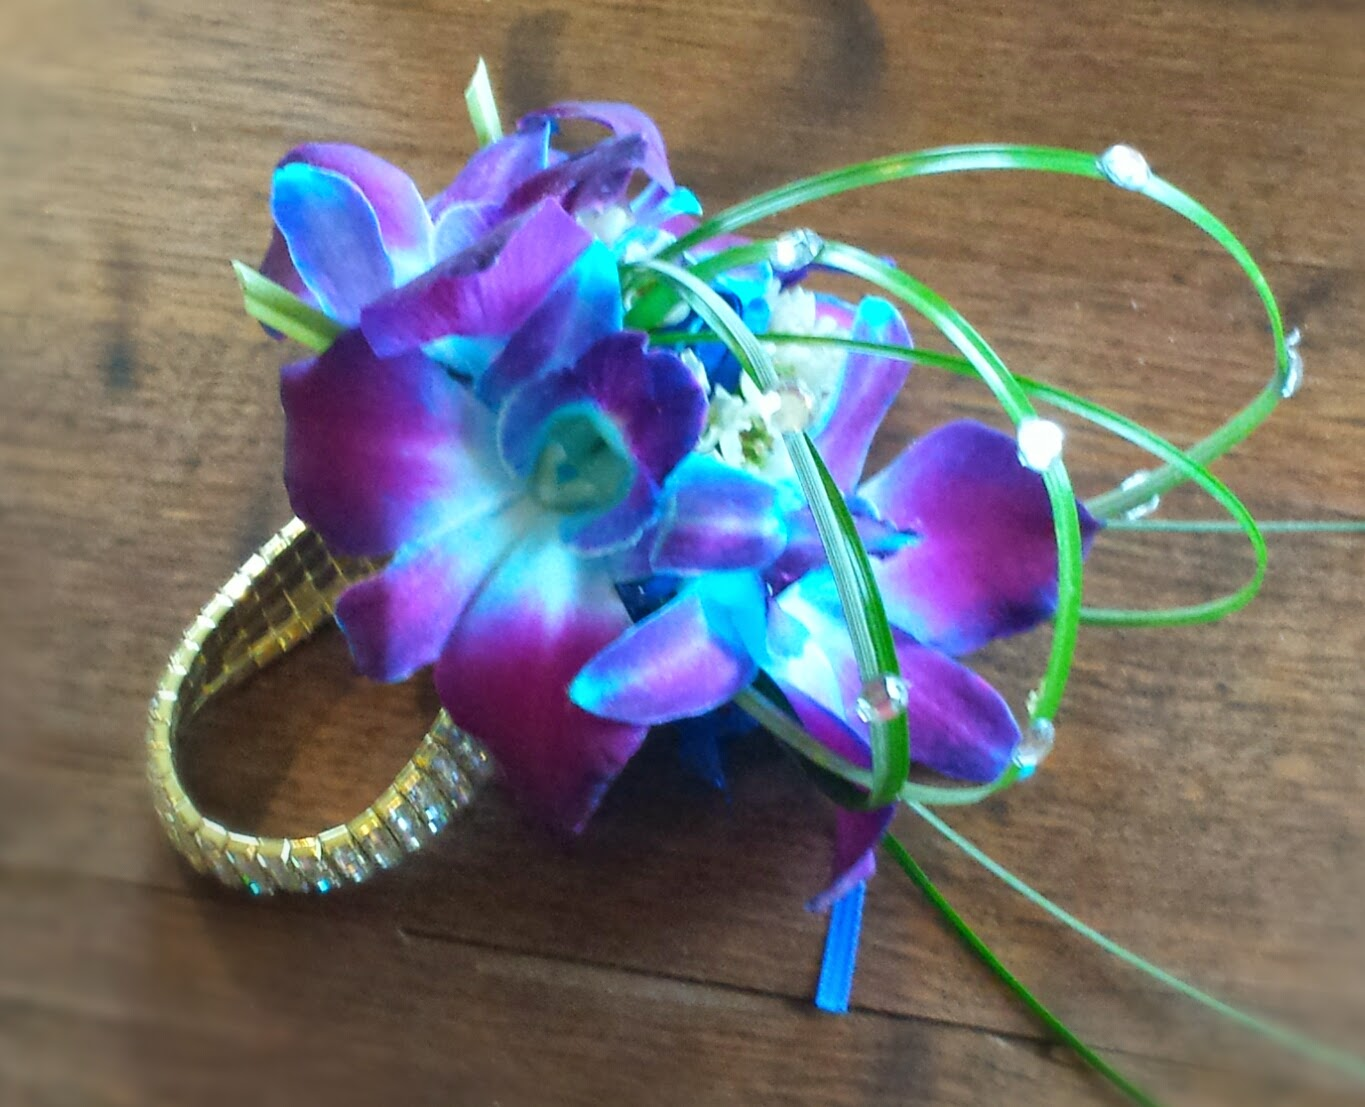 Prom flowers yhs prom wrap up orchids why we love orchids for prom corsages promflowers izmirmasajfo Gallery